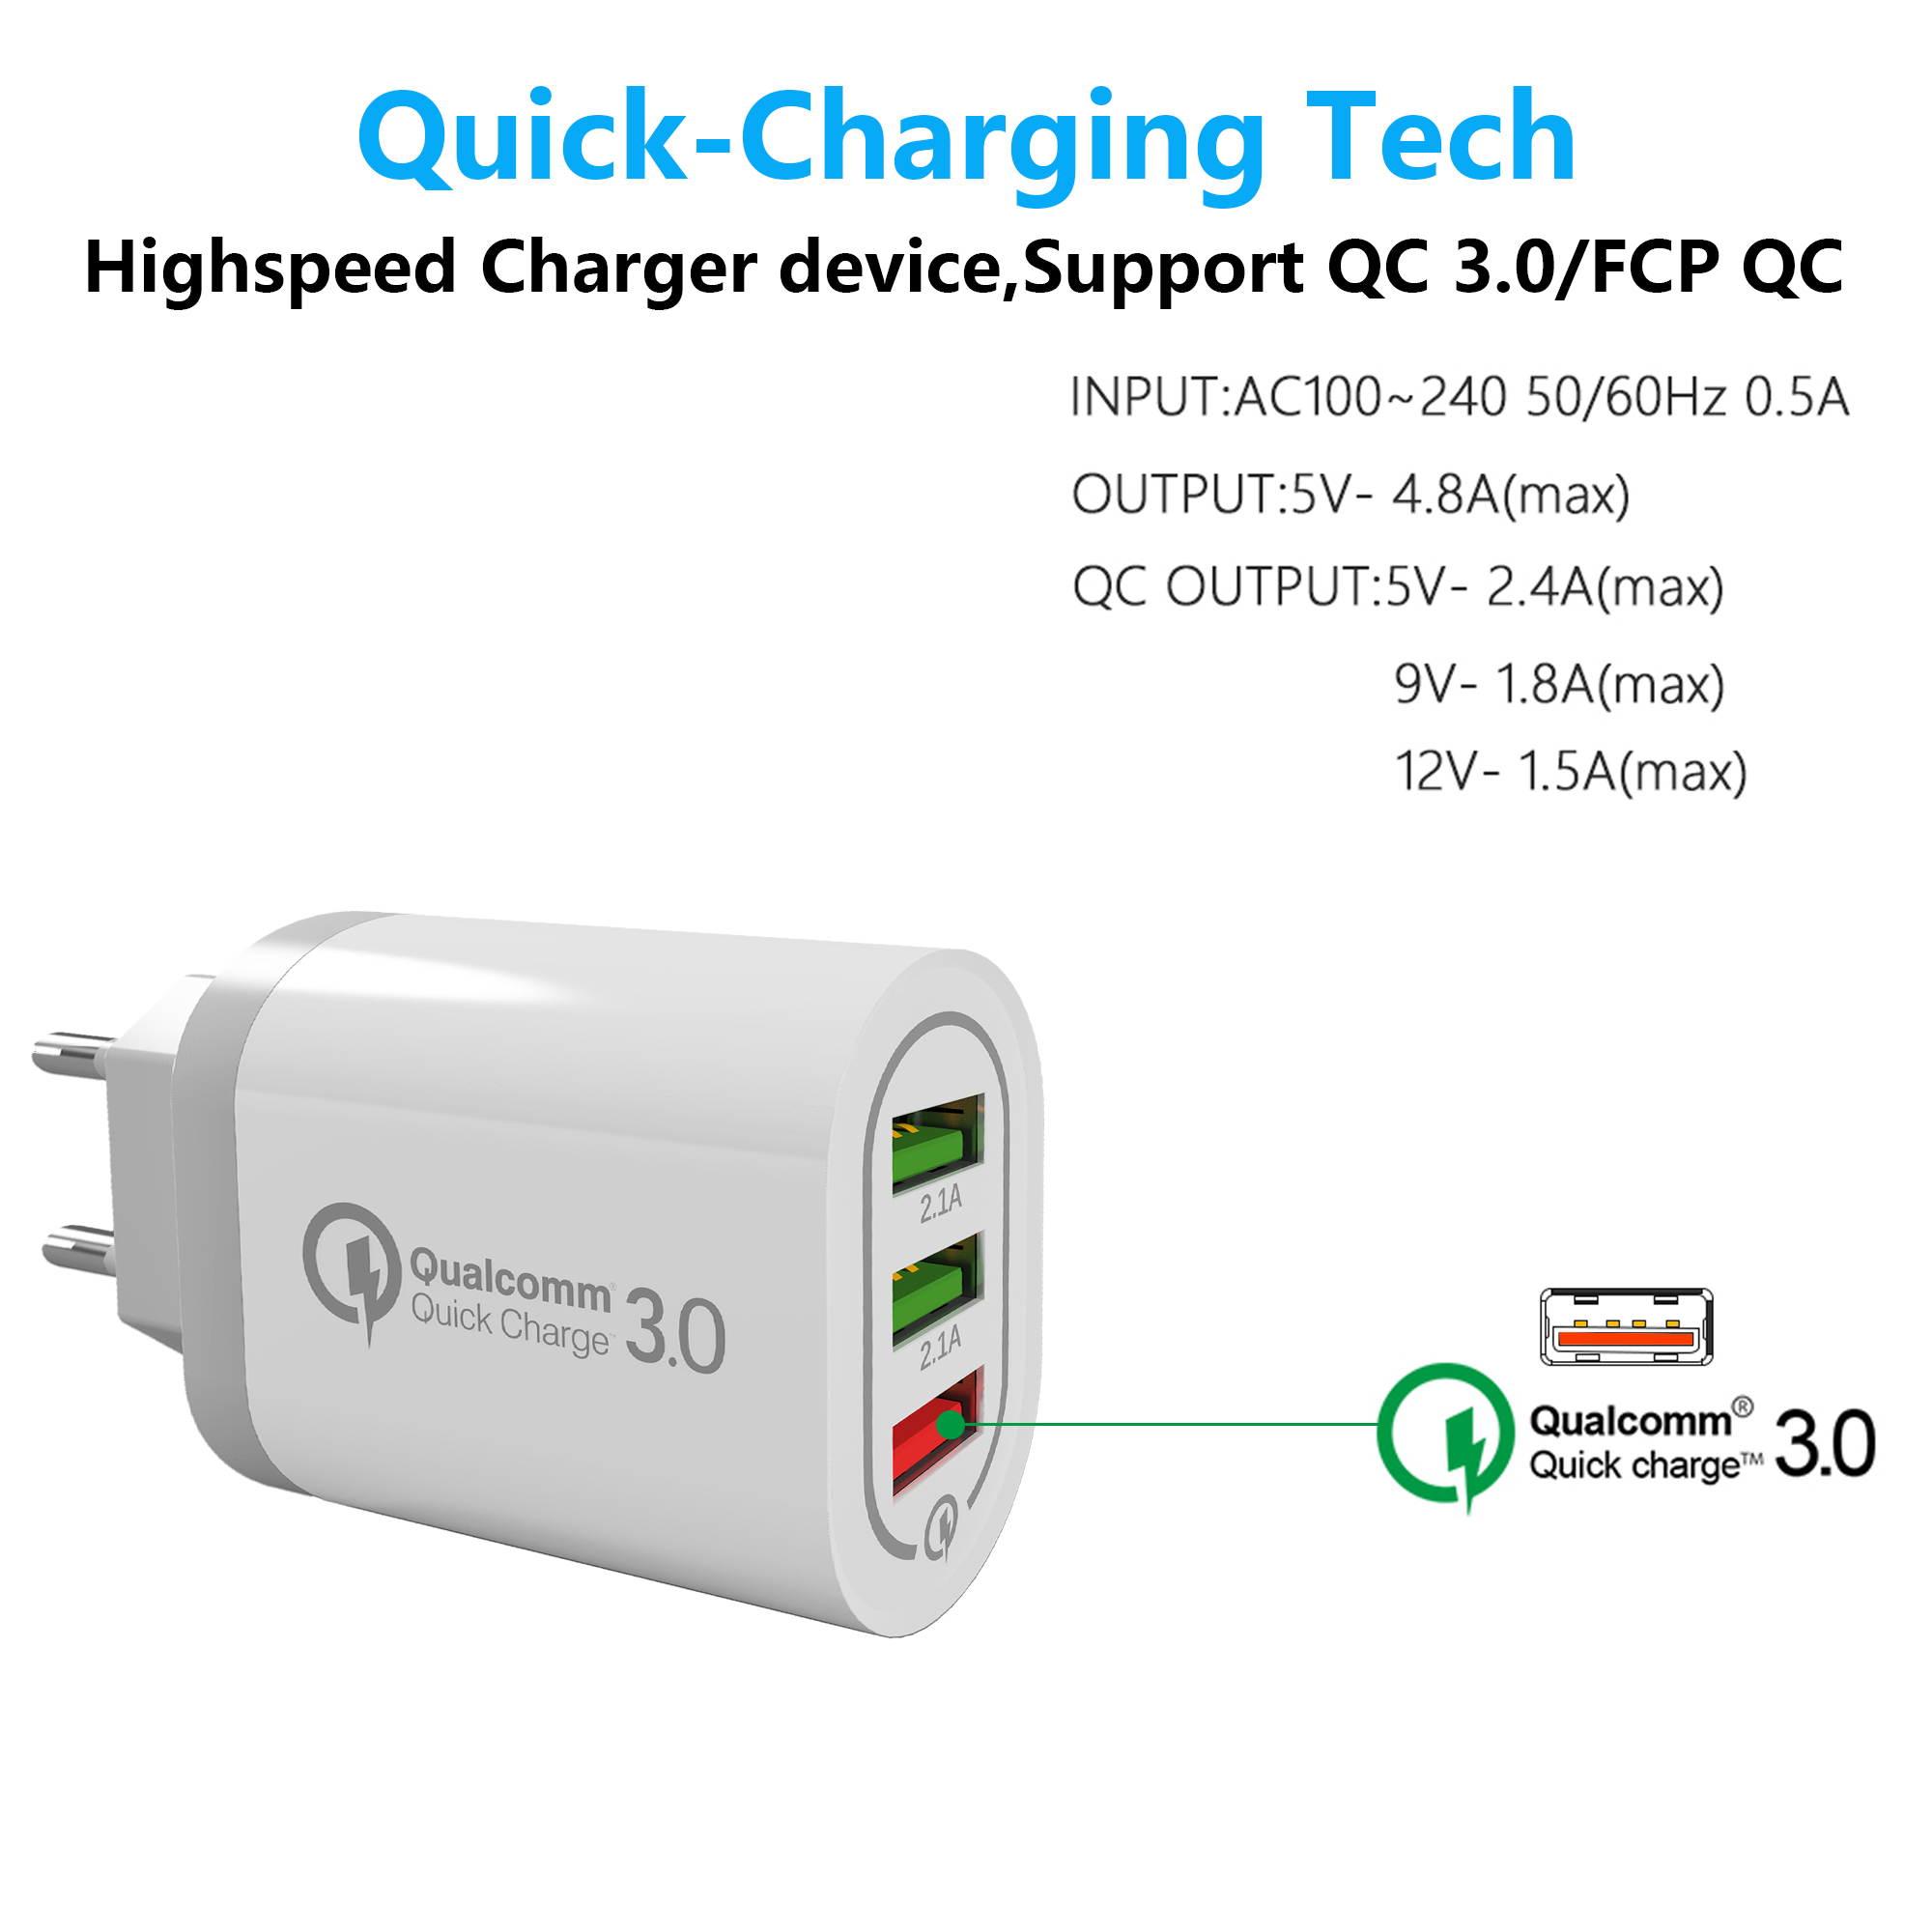 Mobile Phone Accessories quick charge Micro Usb Charger for QC 3.0 hot selling